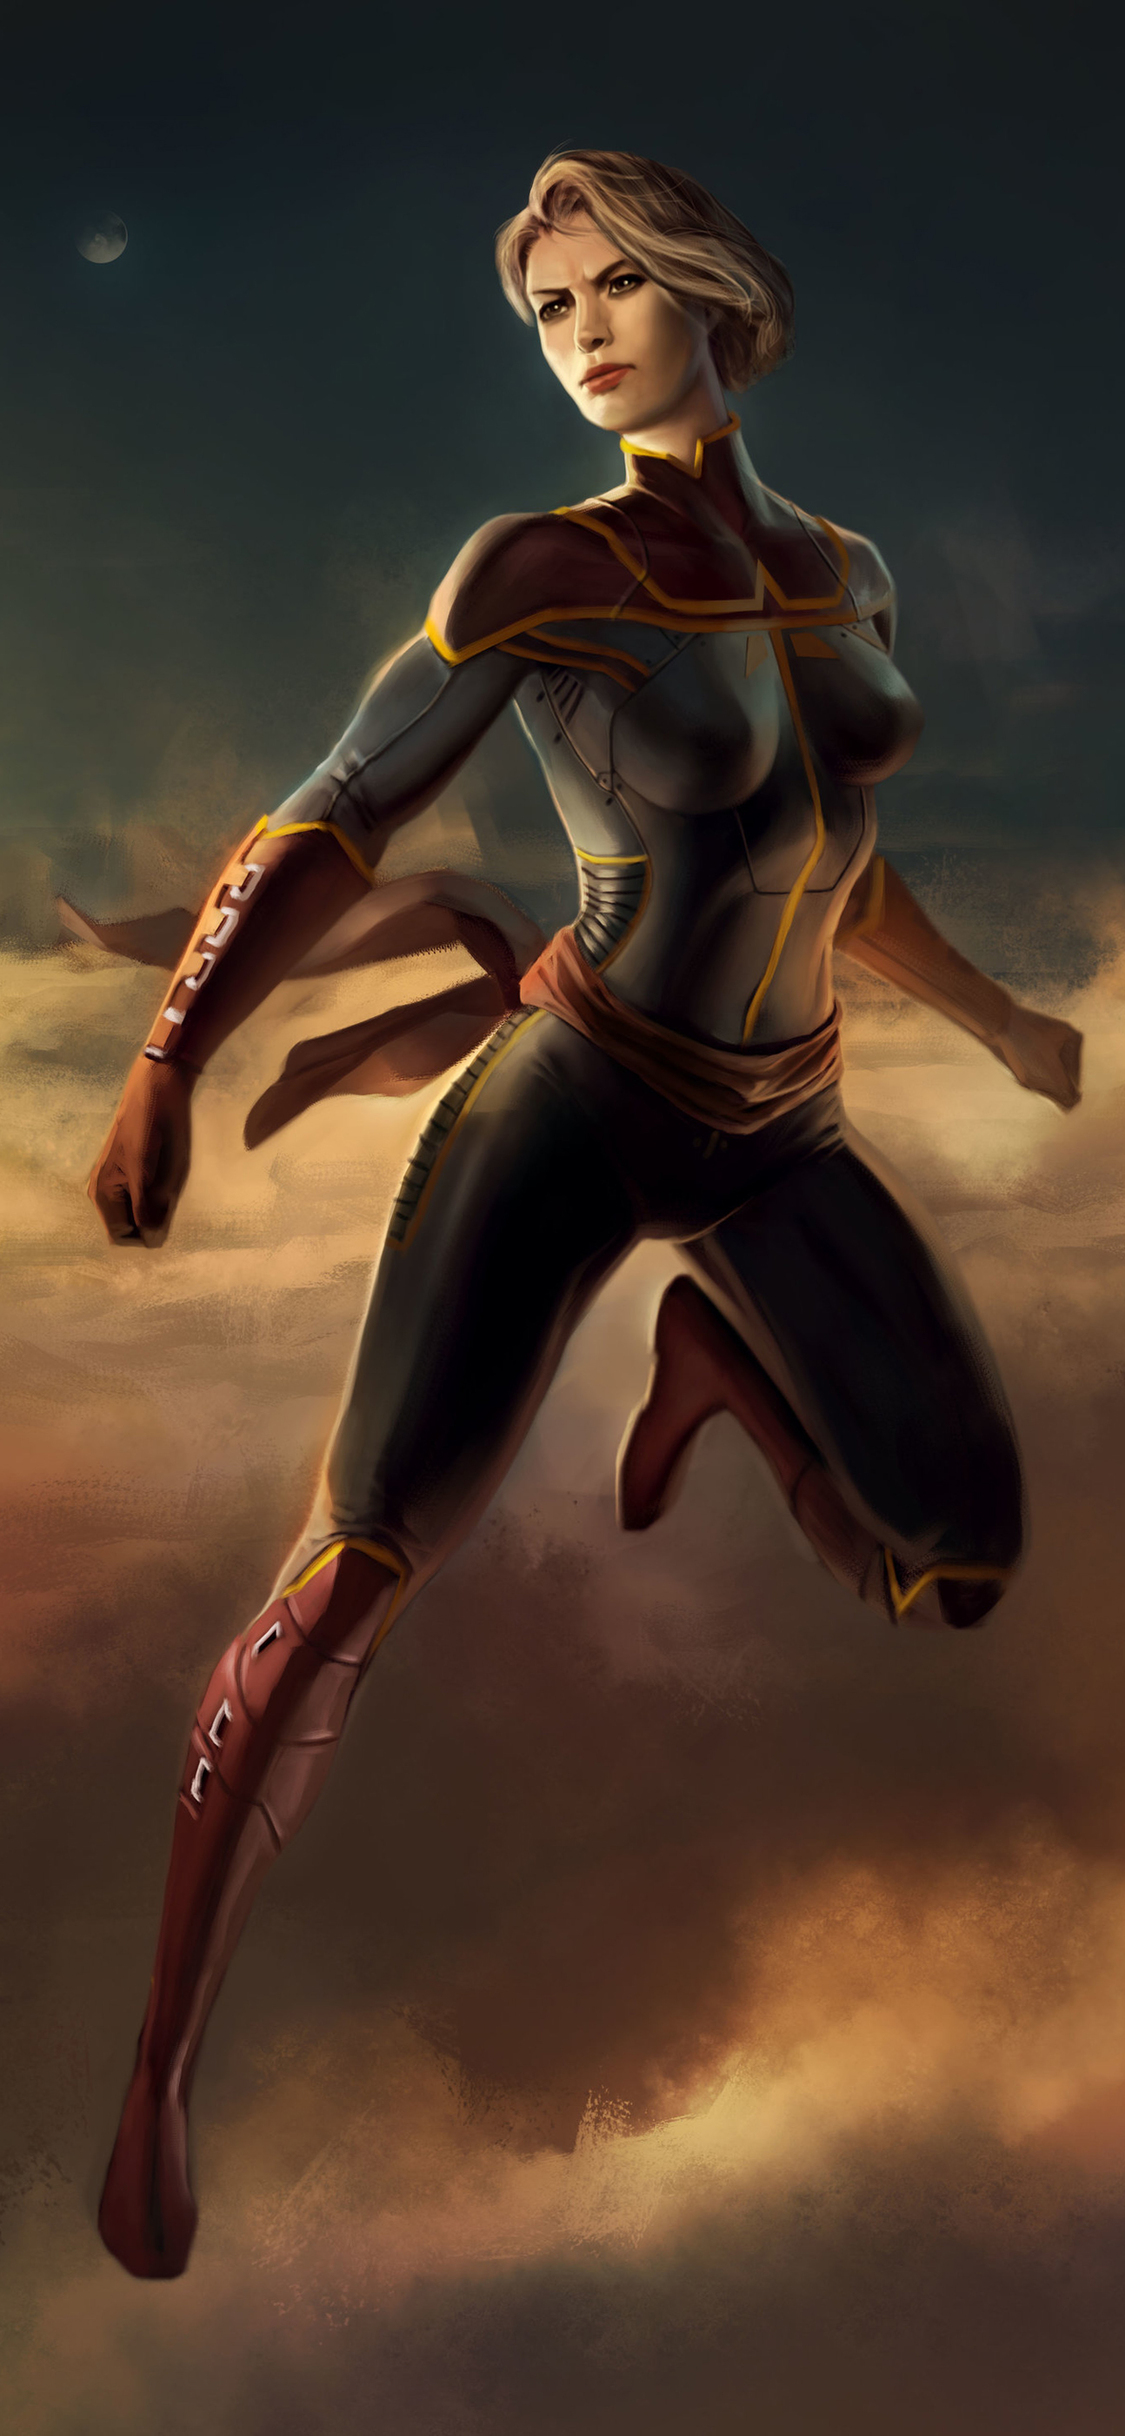 Iphone Xs Captain Marvel Wallpapers